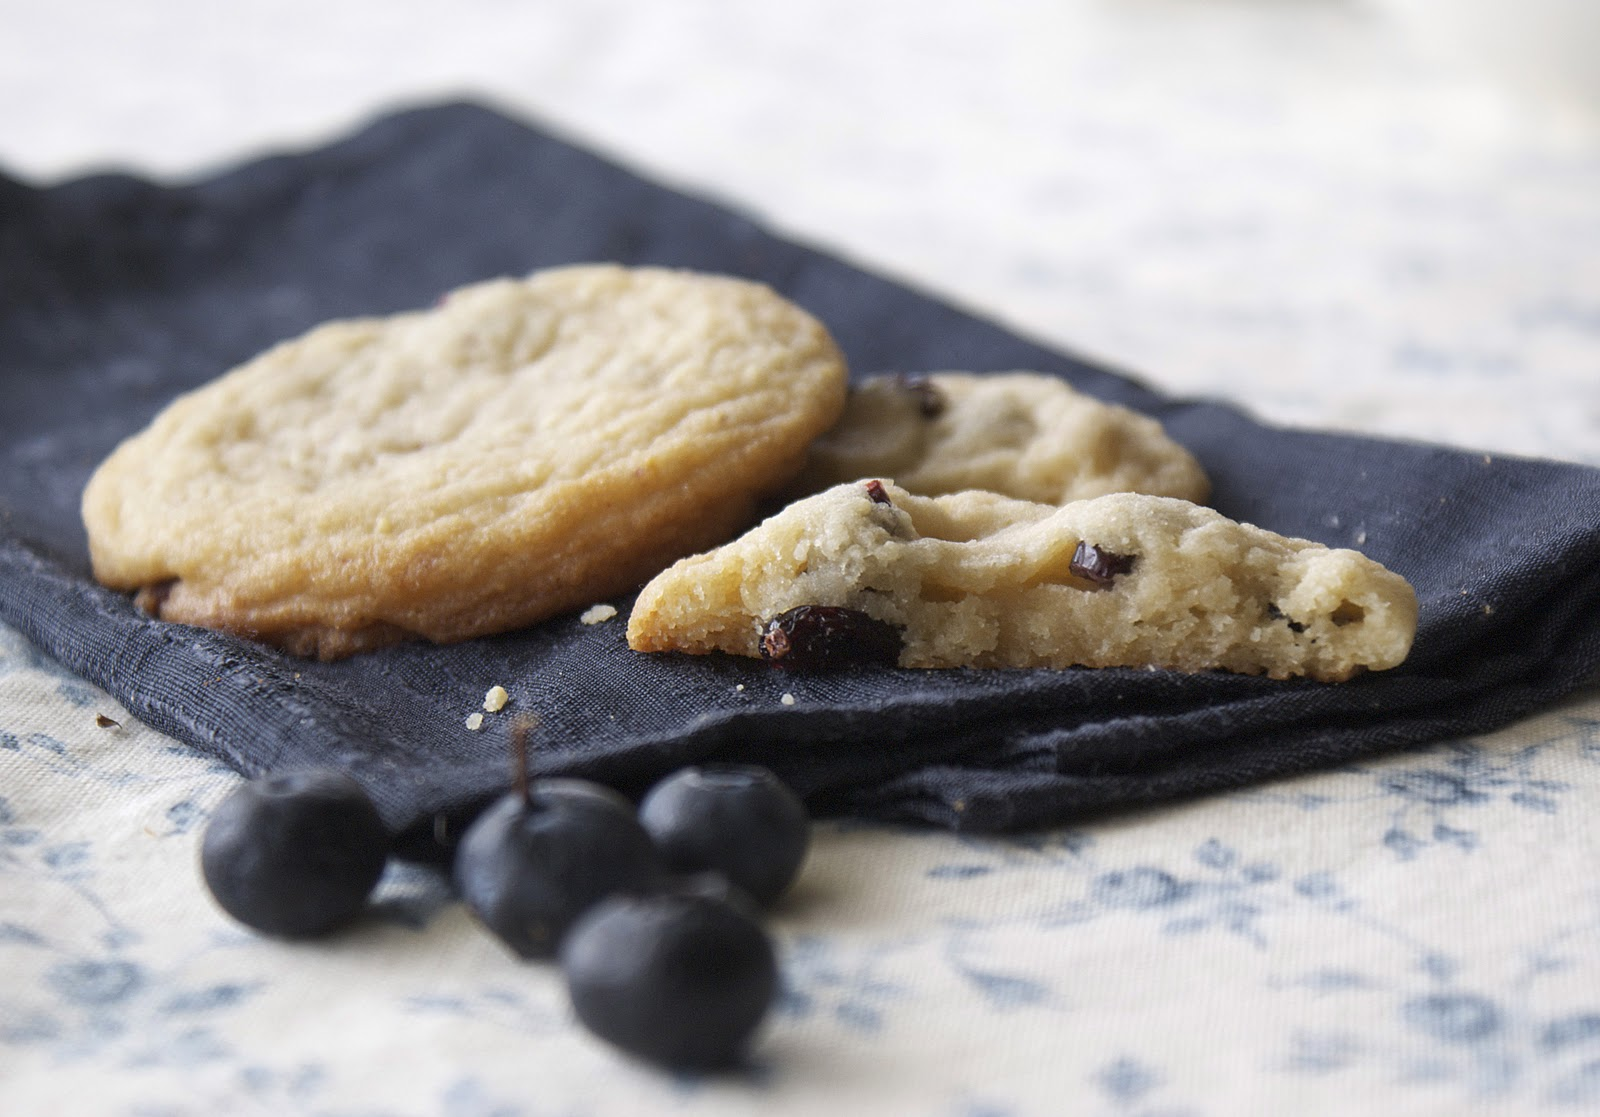 Blueberries and Cream Cookies ~ Heat Oven to 350